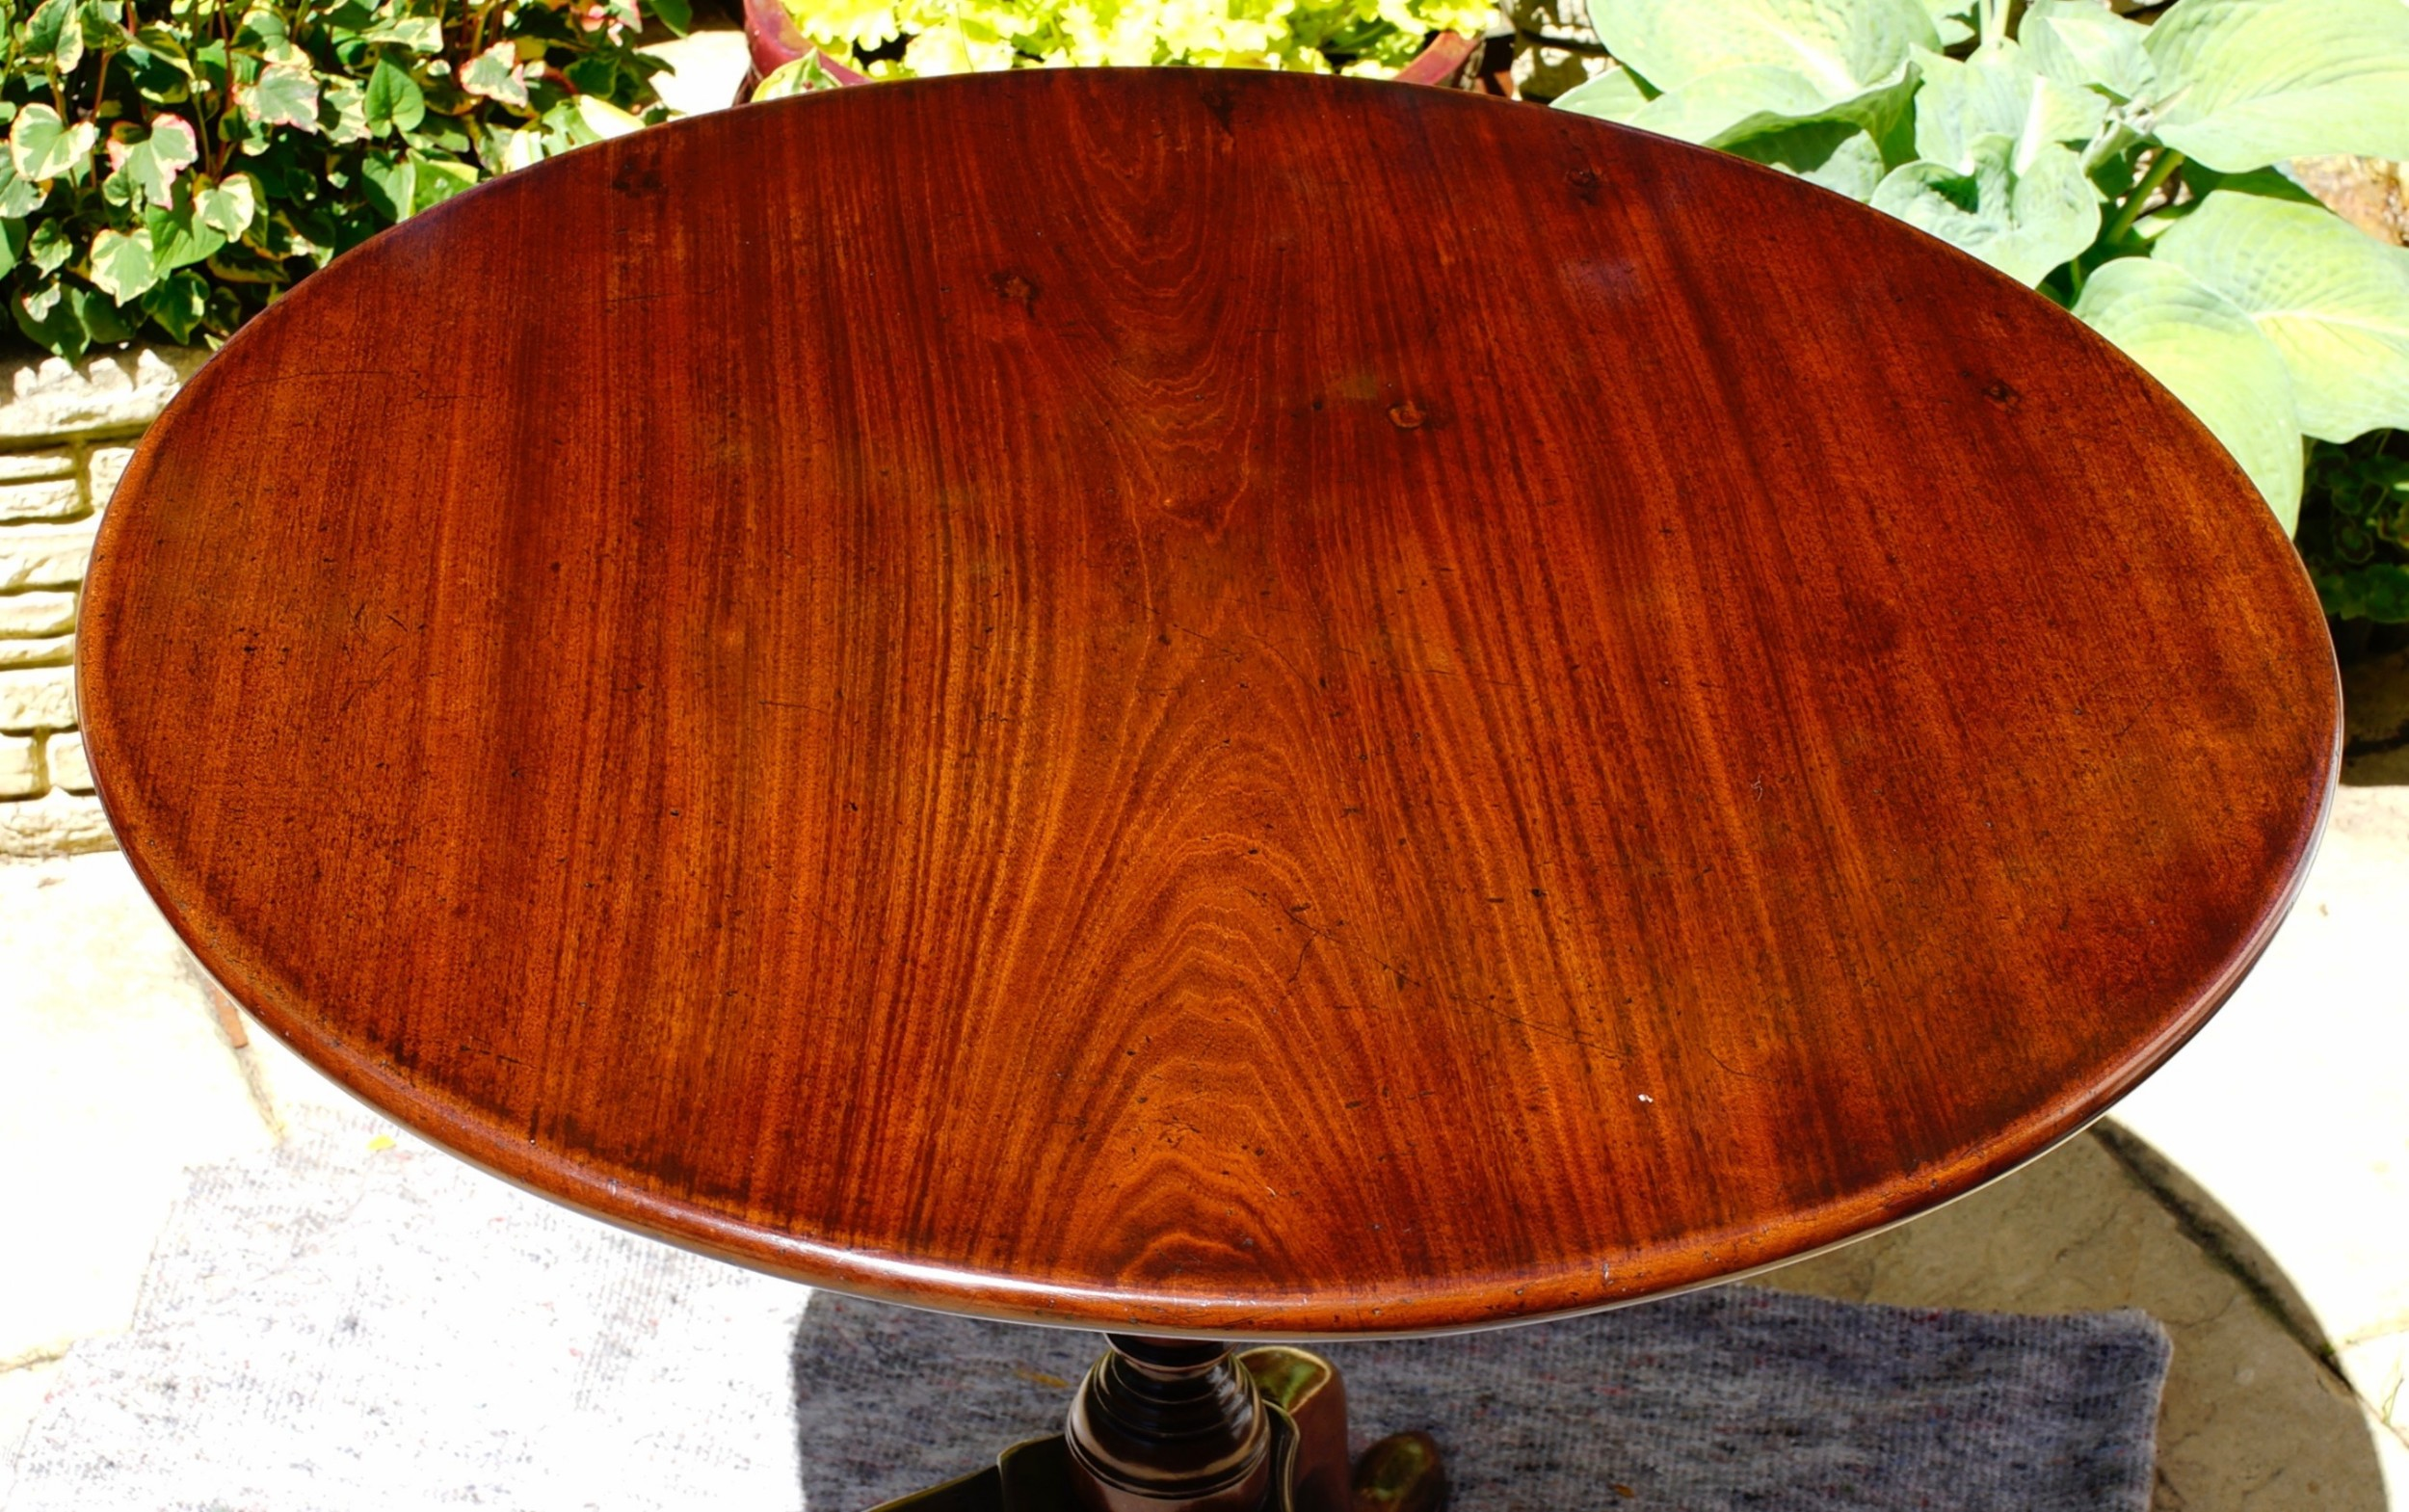 george 11 mahogany tripod table with onepiece top in well used solid condition